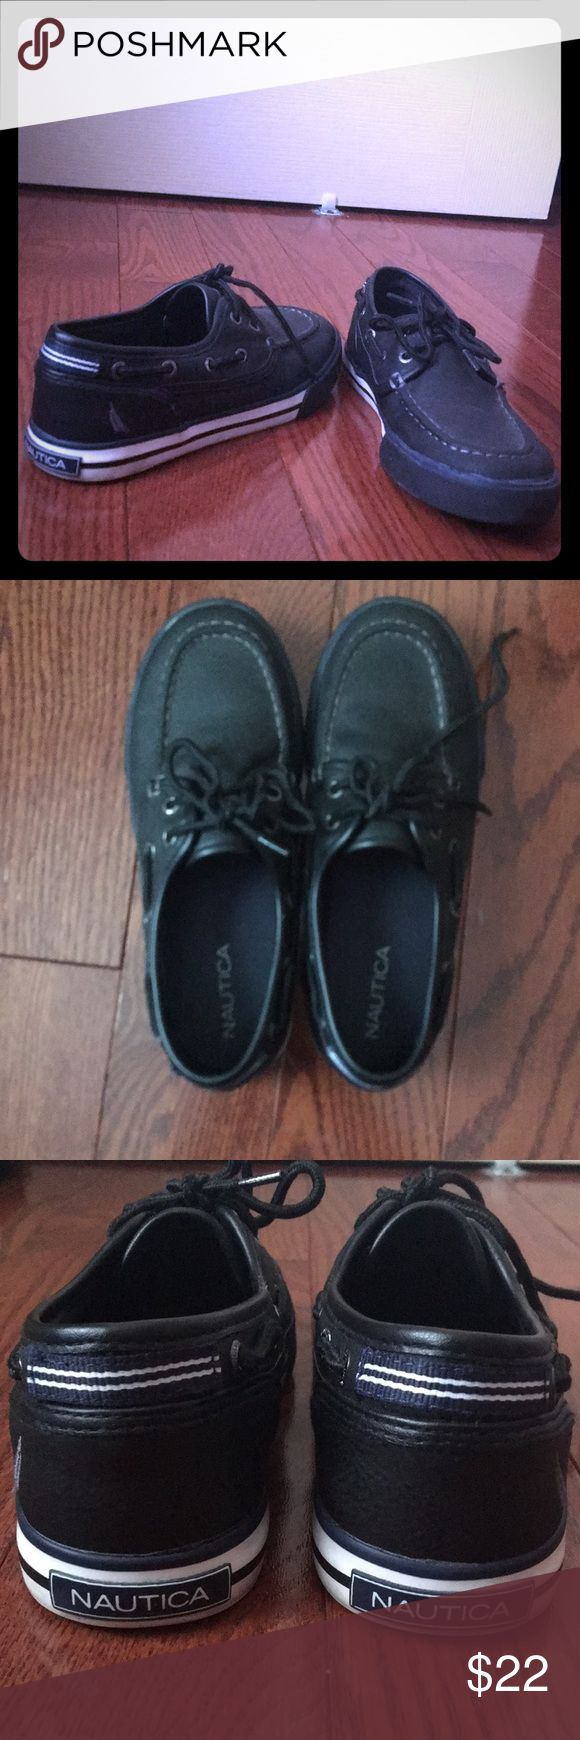 BOYS NAUTICAL SHOES Worn once navy front tie great condition very minor wear ! Nautica Shoes Moccasins